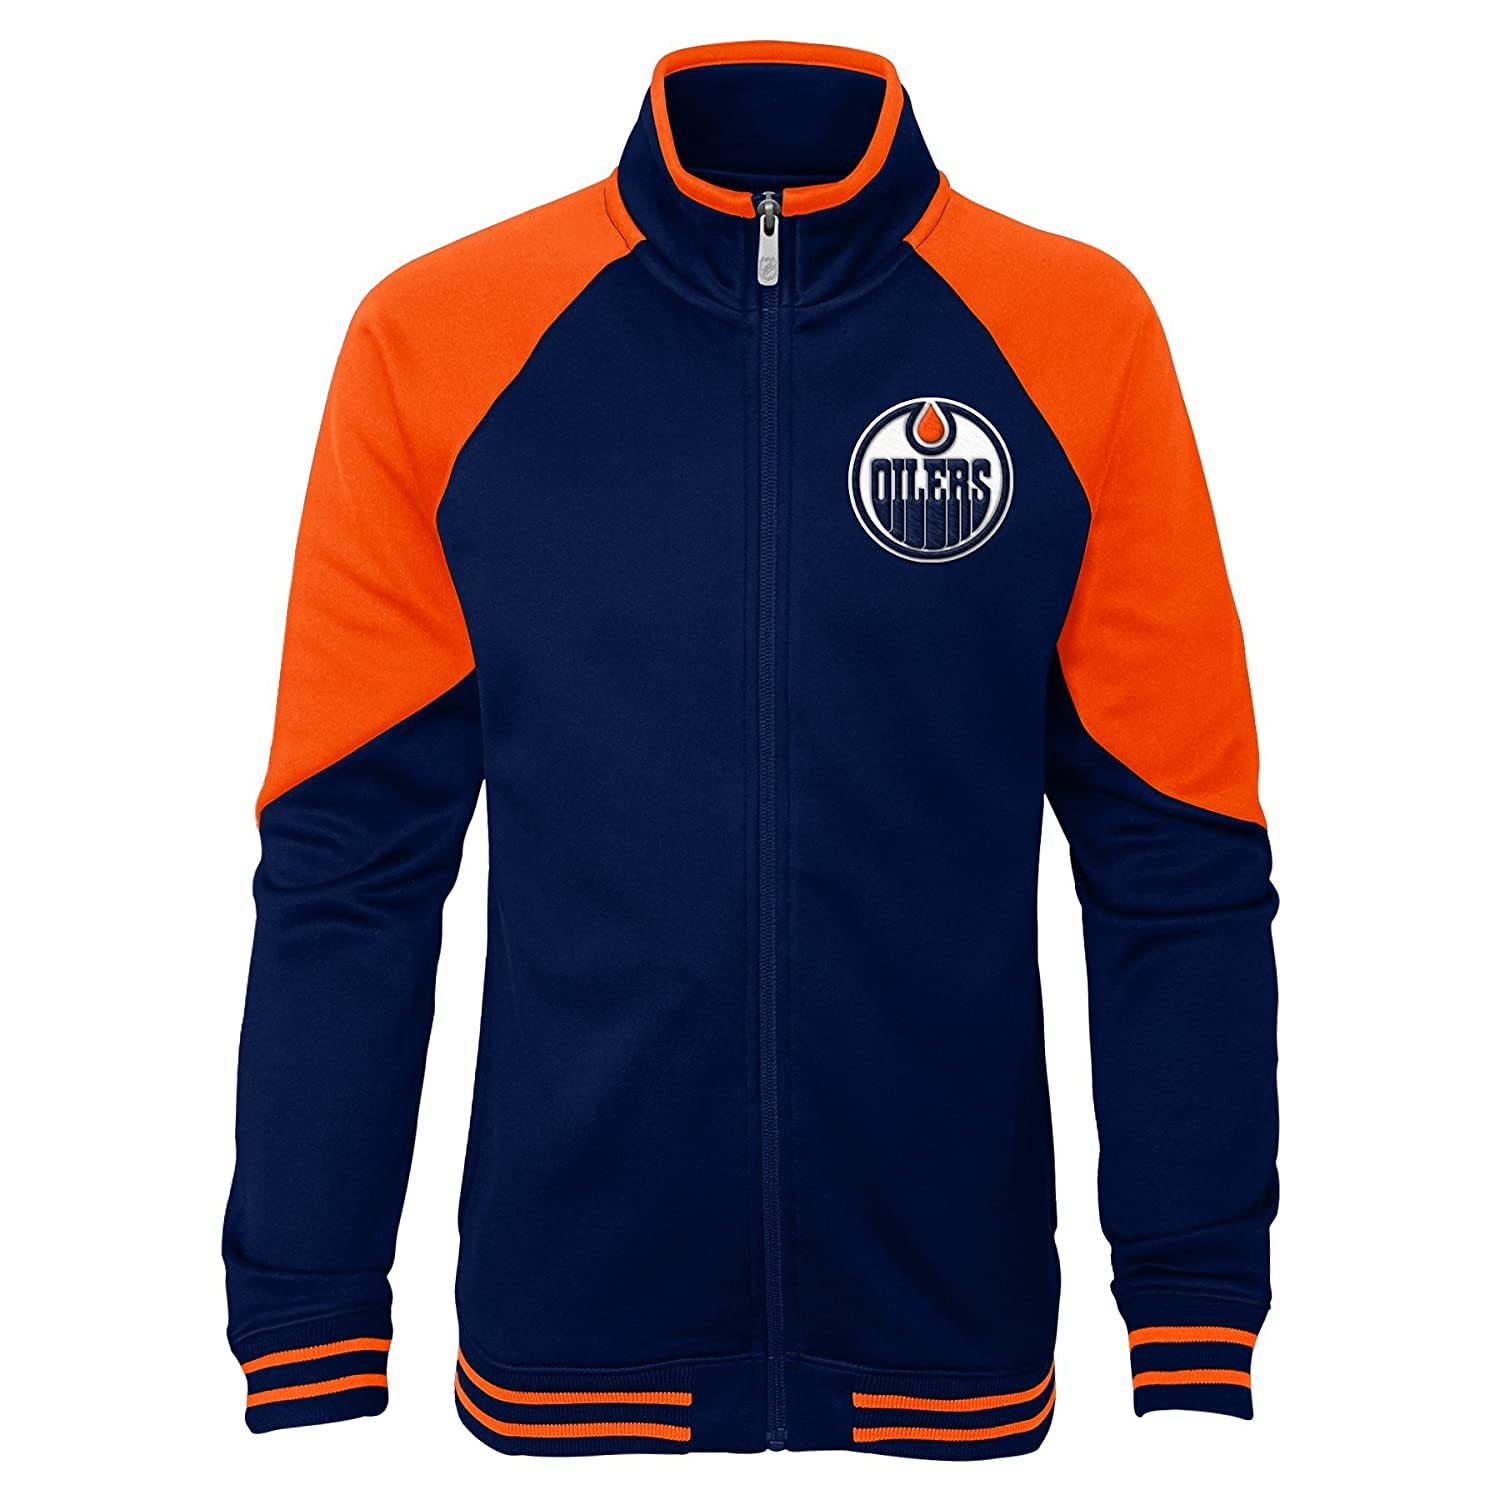 Outerstuff NHL Youth Girls Faceoff Full Zip Jacket